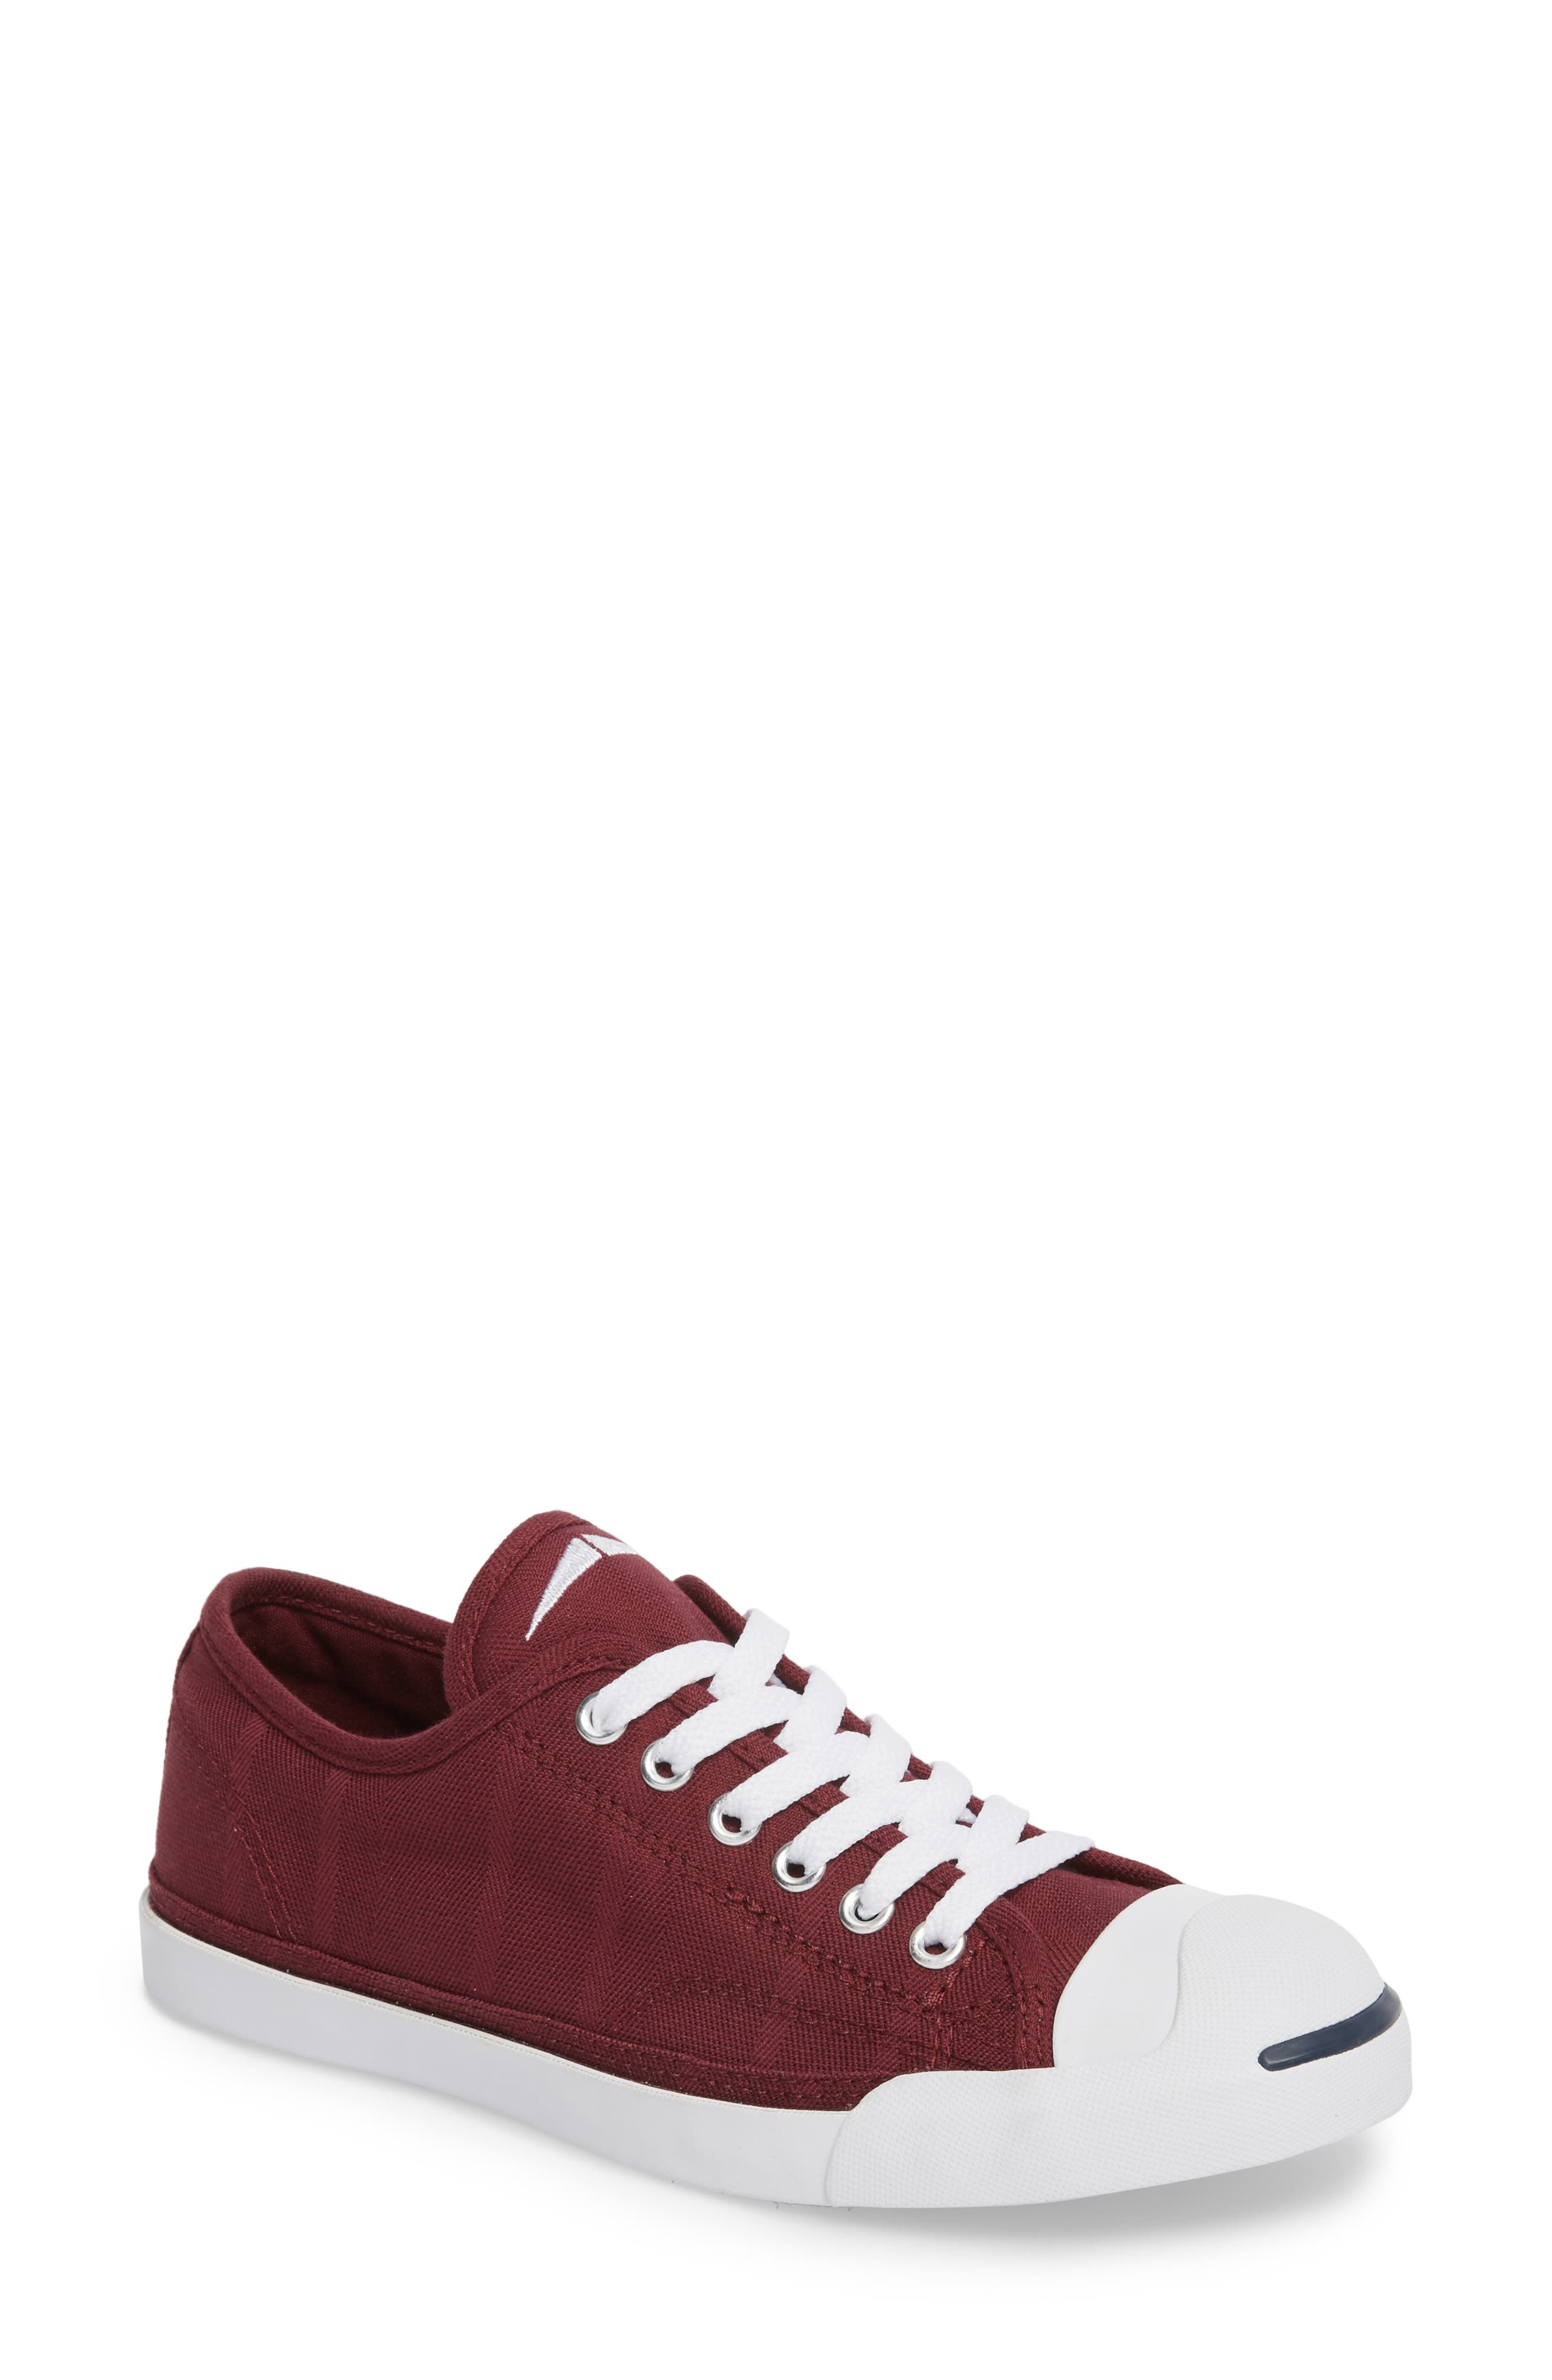 ,                             Jack Purcell Low Top Sneaker,                             Main thumbnail 55, color,                             930